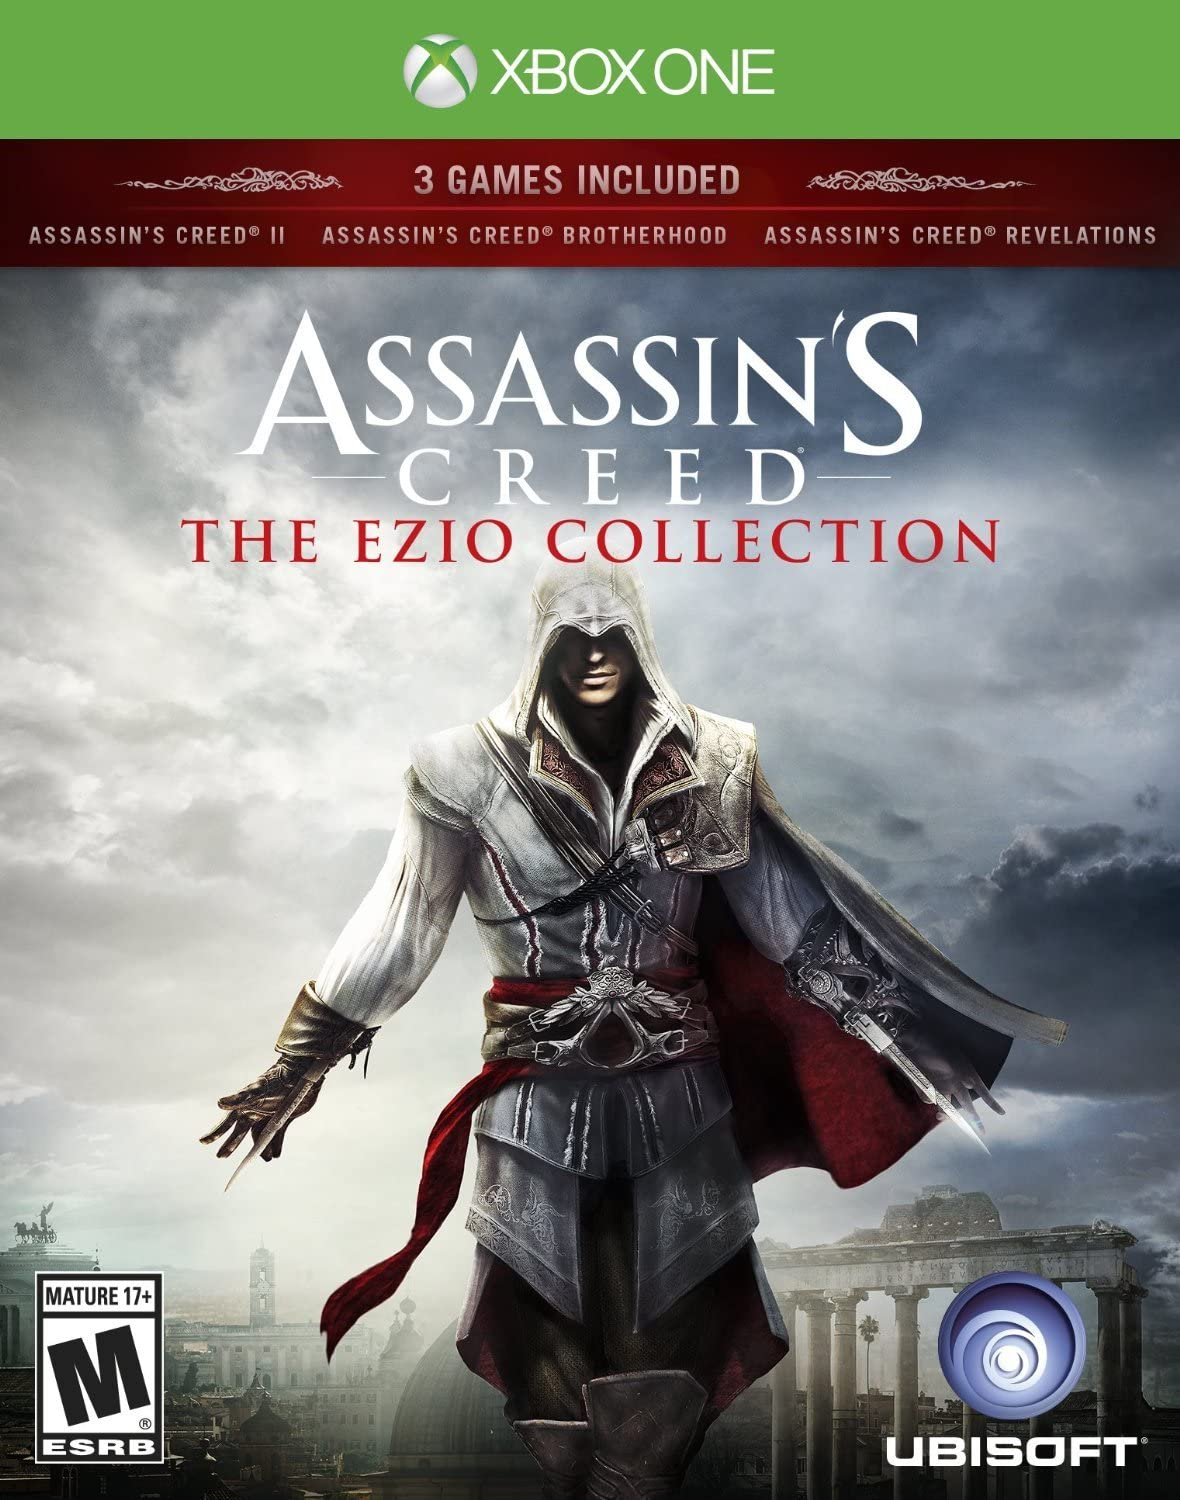 Assassin's Creed: The Ezio Collection - Xbox One